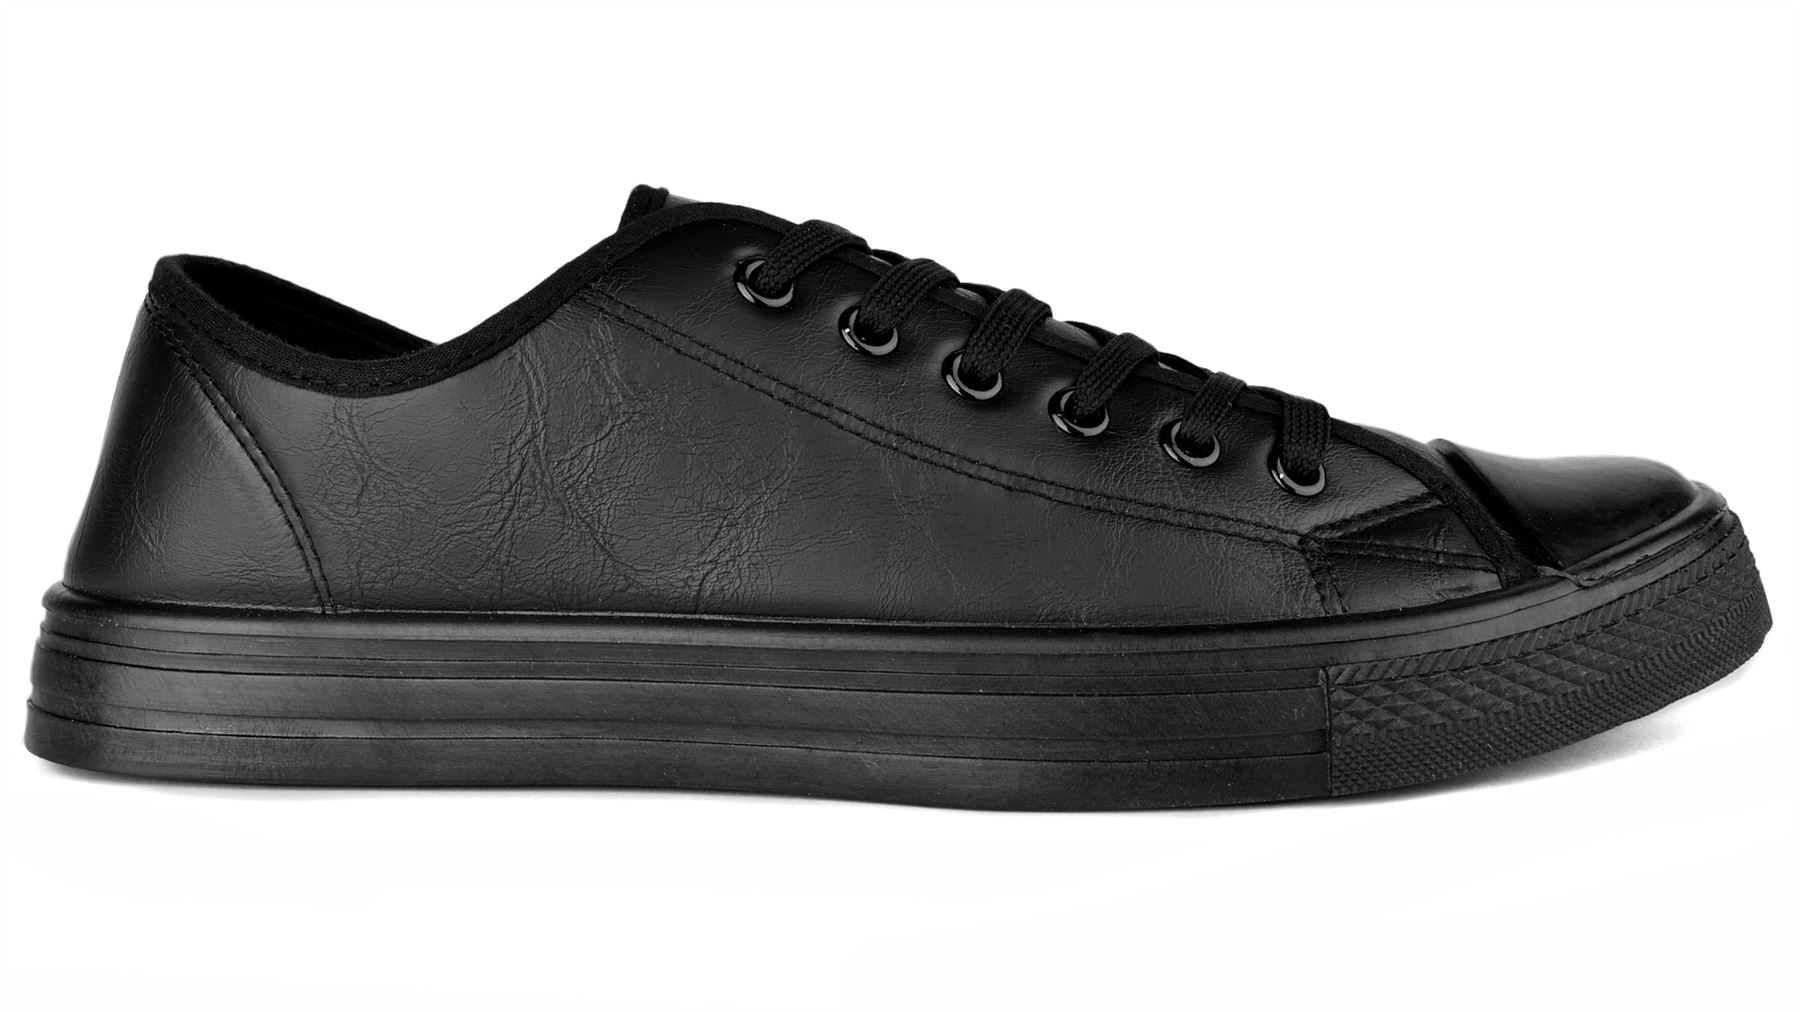 Converse Mens Chuck Taylor OX Leather Plimsolls Low Top Trainers Black White Brand New · Converse out of 5 stars - Converse Mens Chuck Taylor OX Leather Plimsolls .